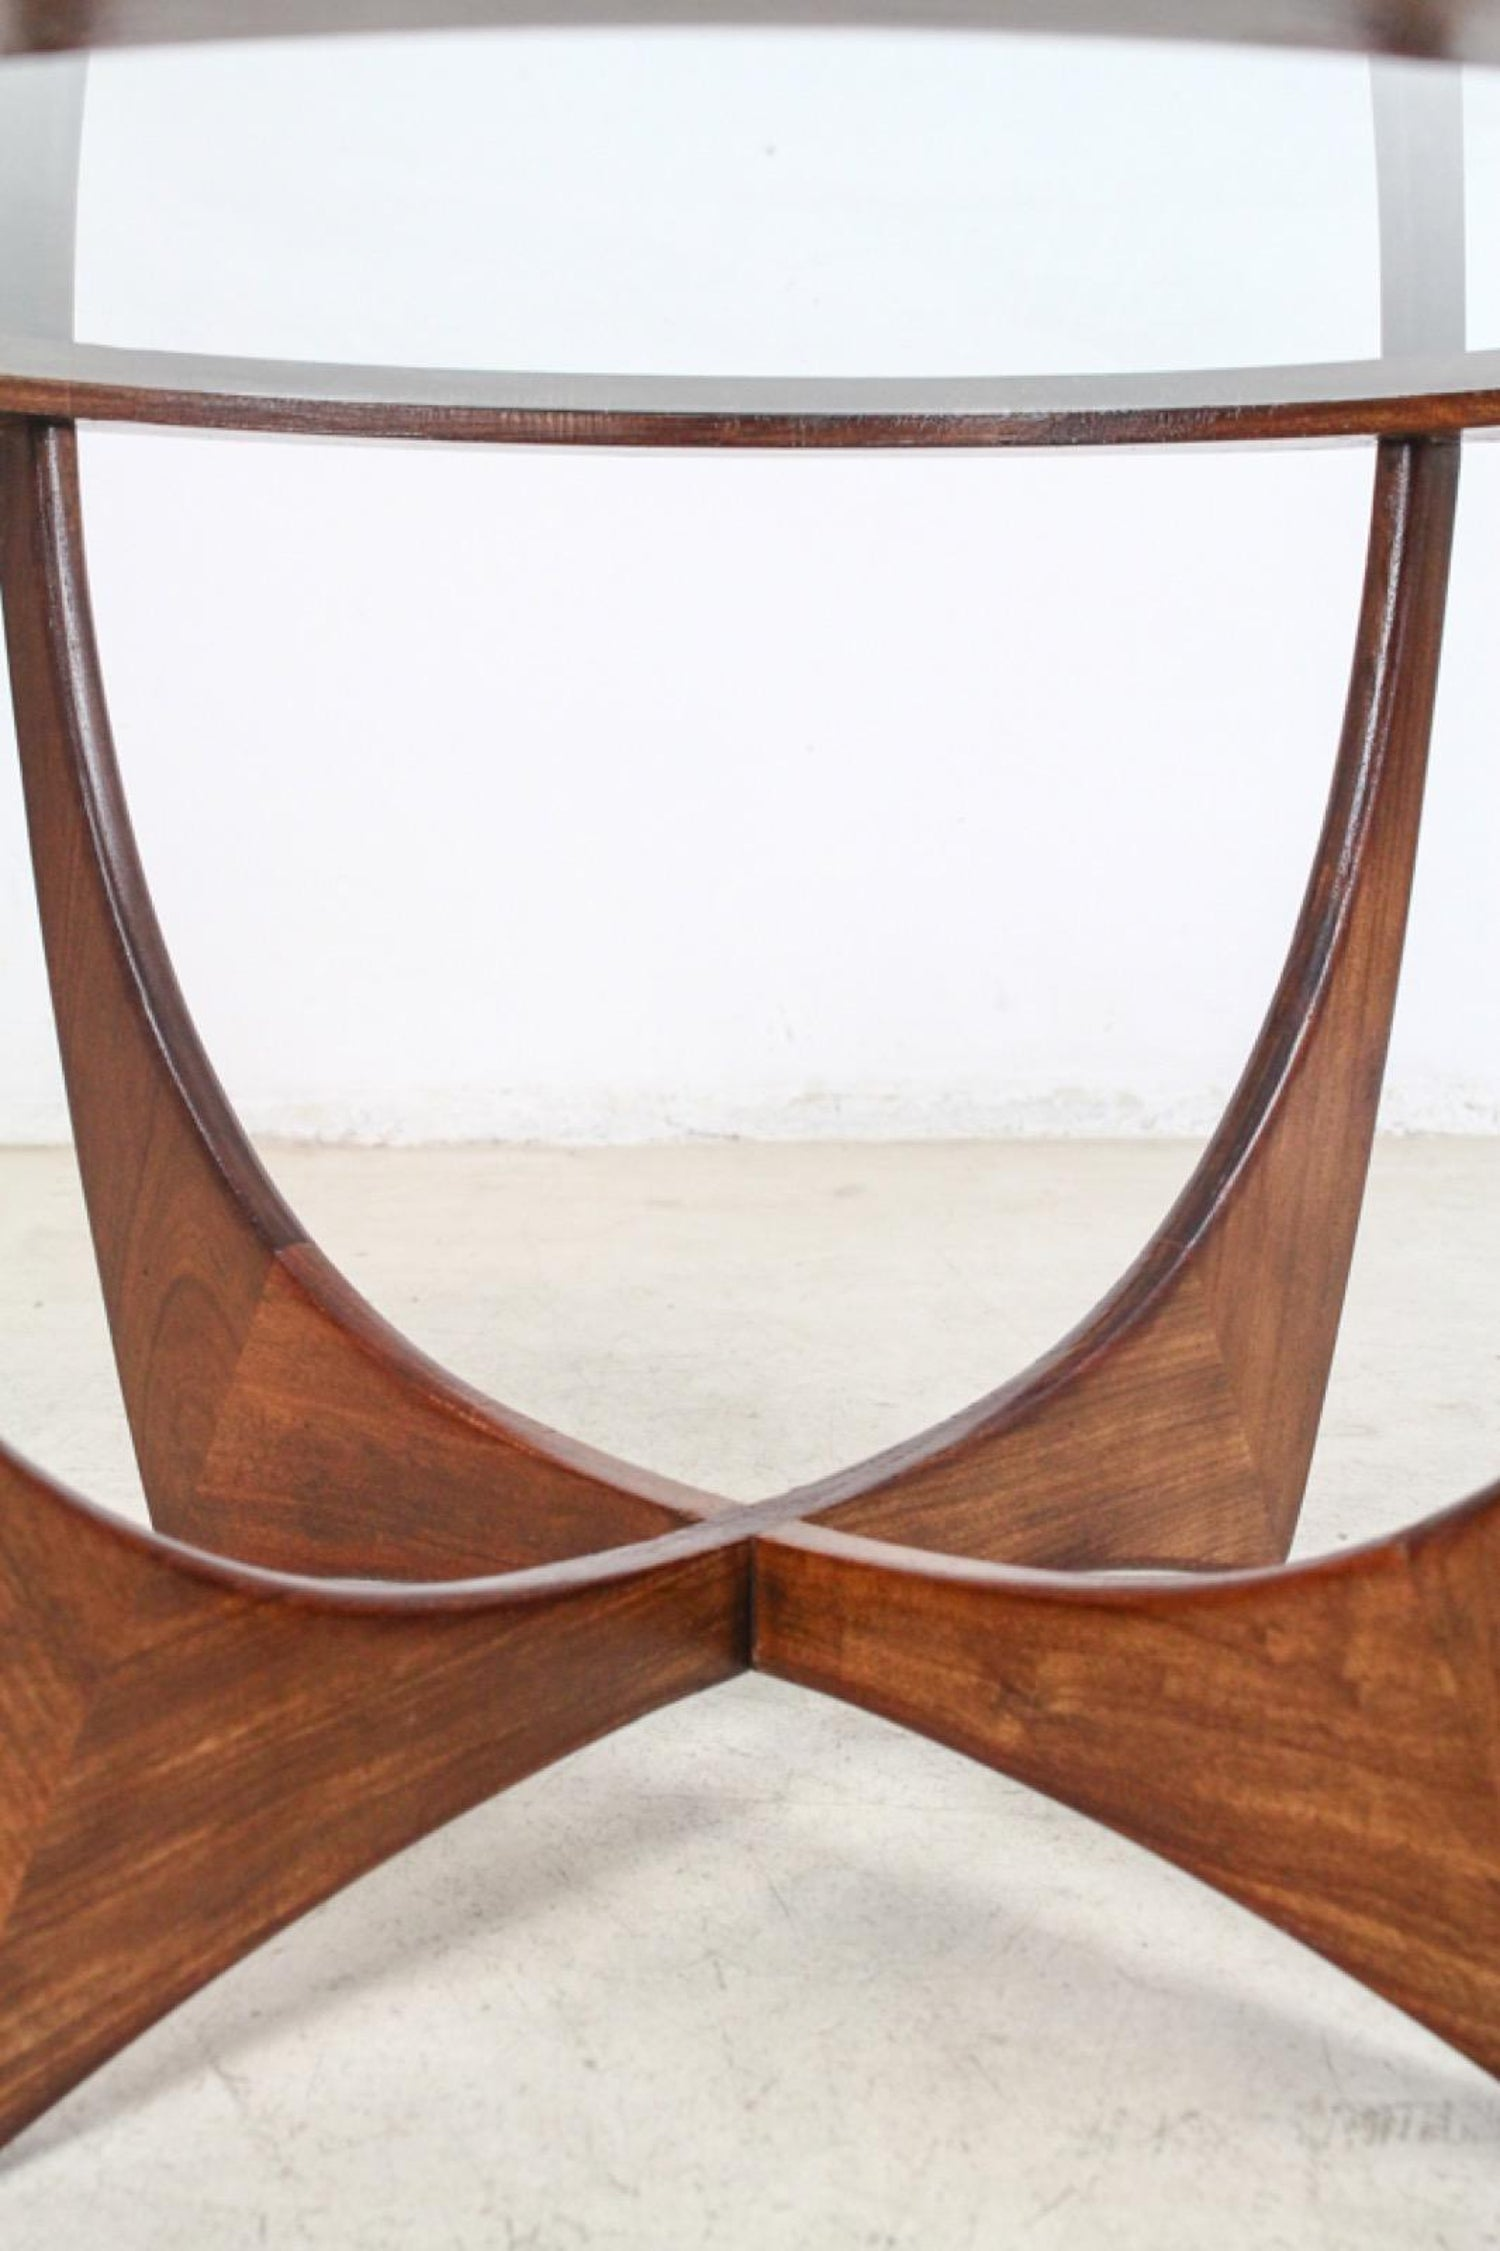 Astro Coffee Table.Model Astro Coffee Table By Victor Wilkins For G Plan 1960s